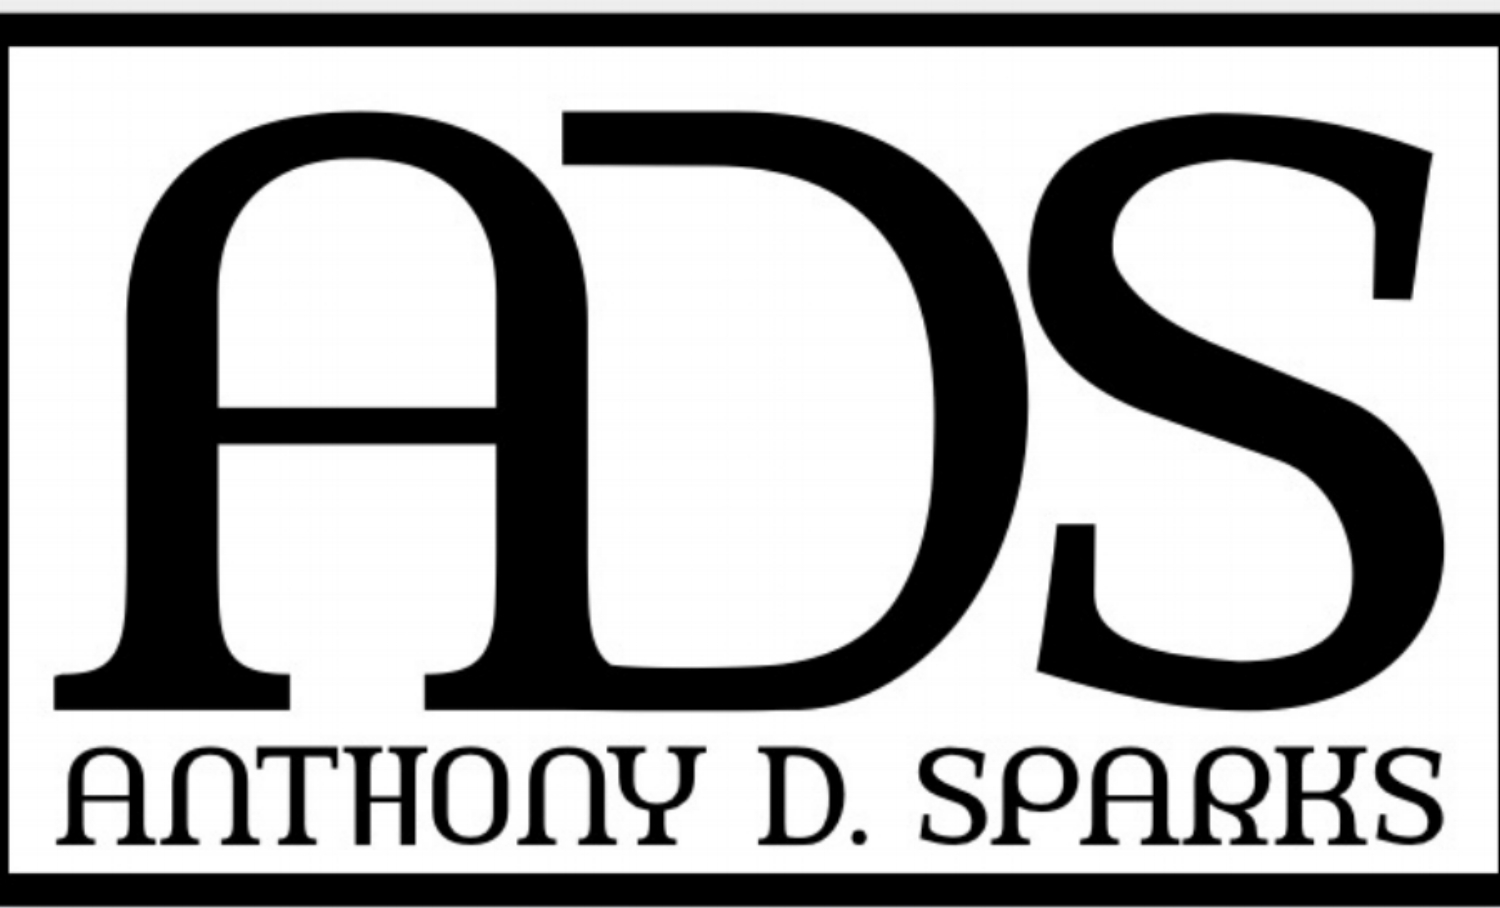 Anthony D. Sparks LLC